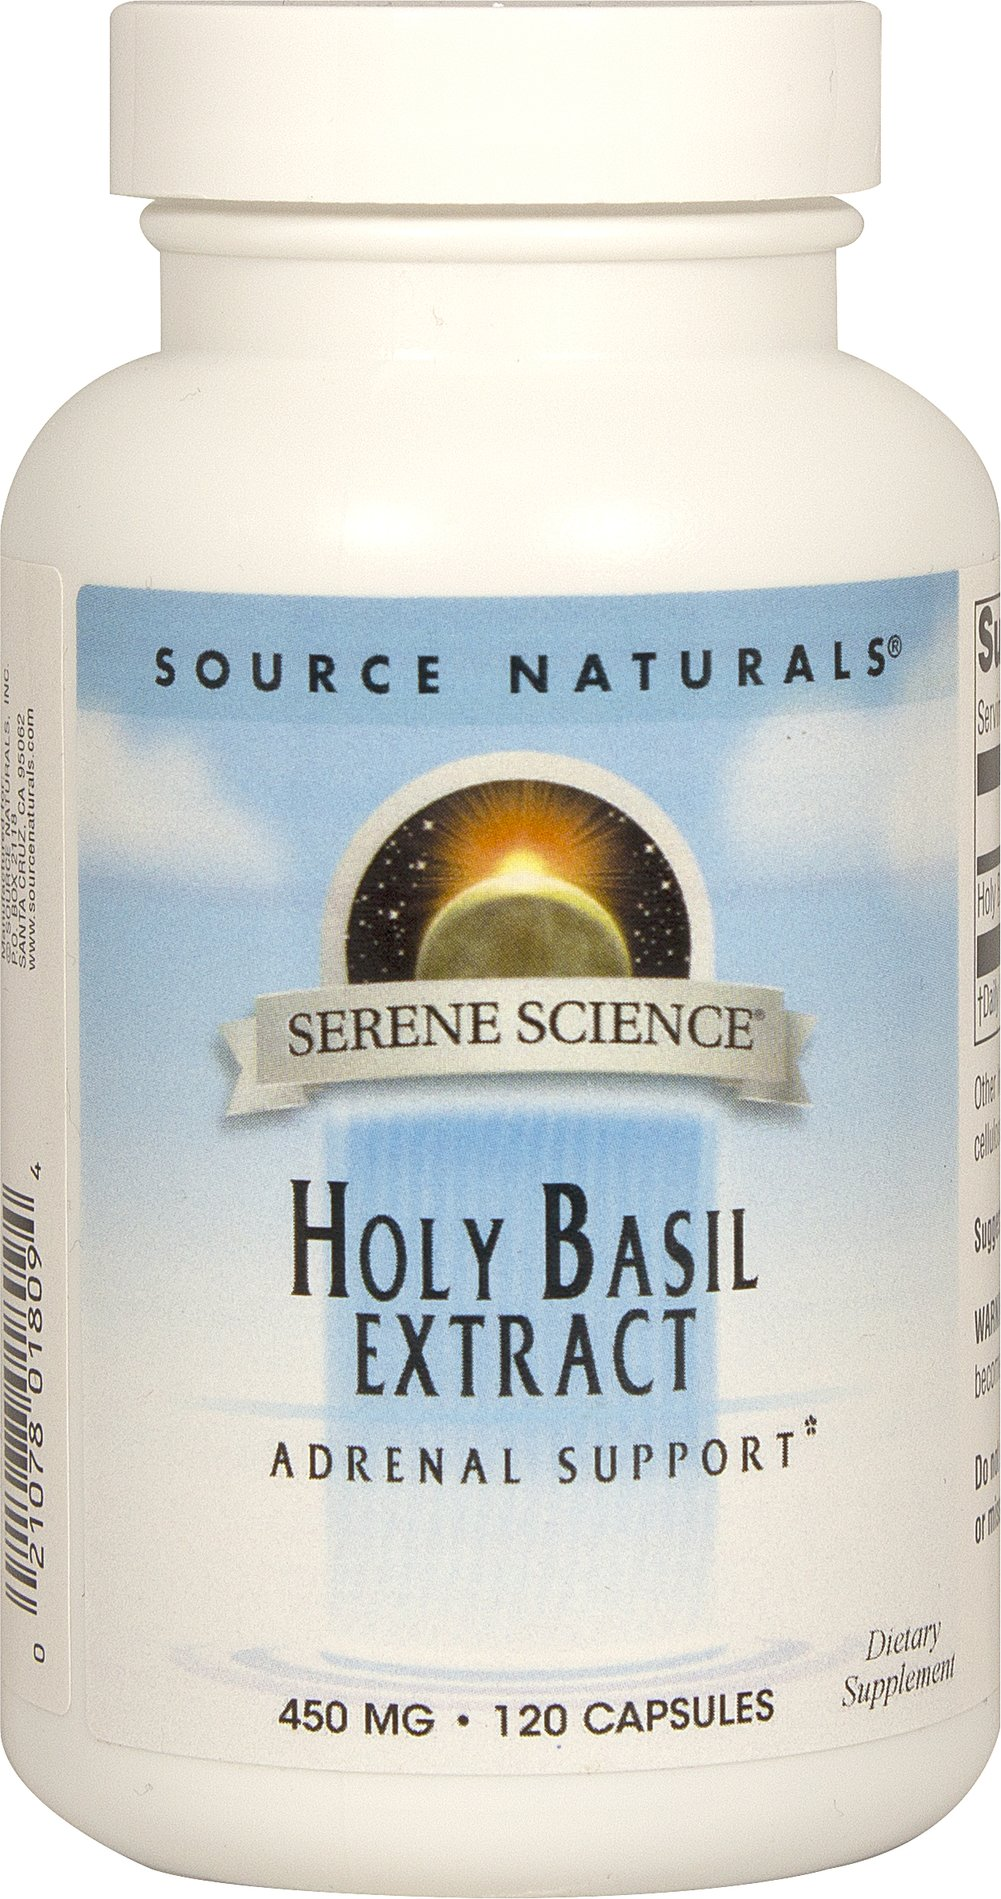 Holy Basil Extract 450 mg Thumbnail Alternate Bottle View